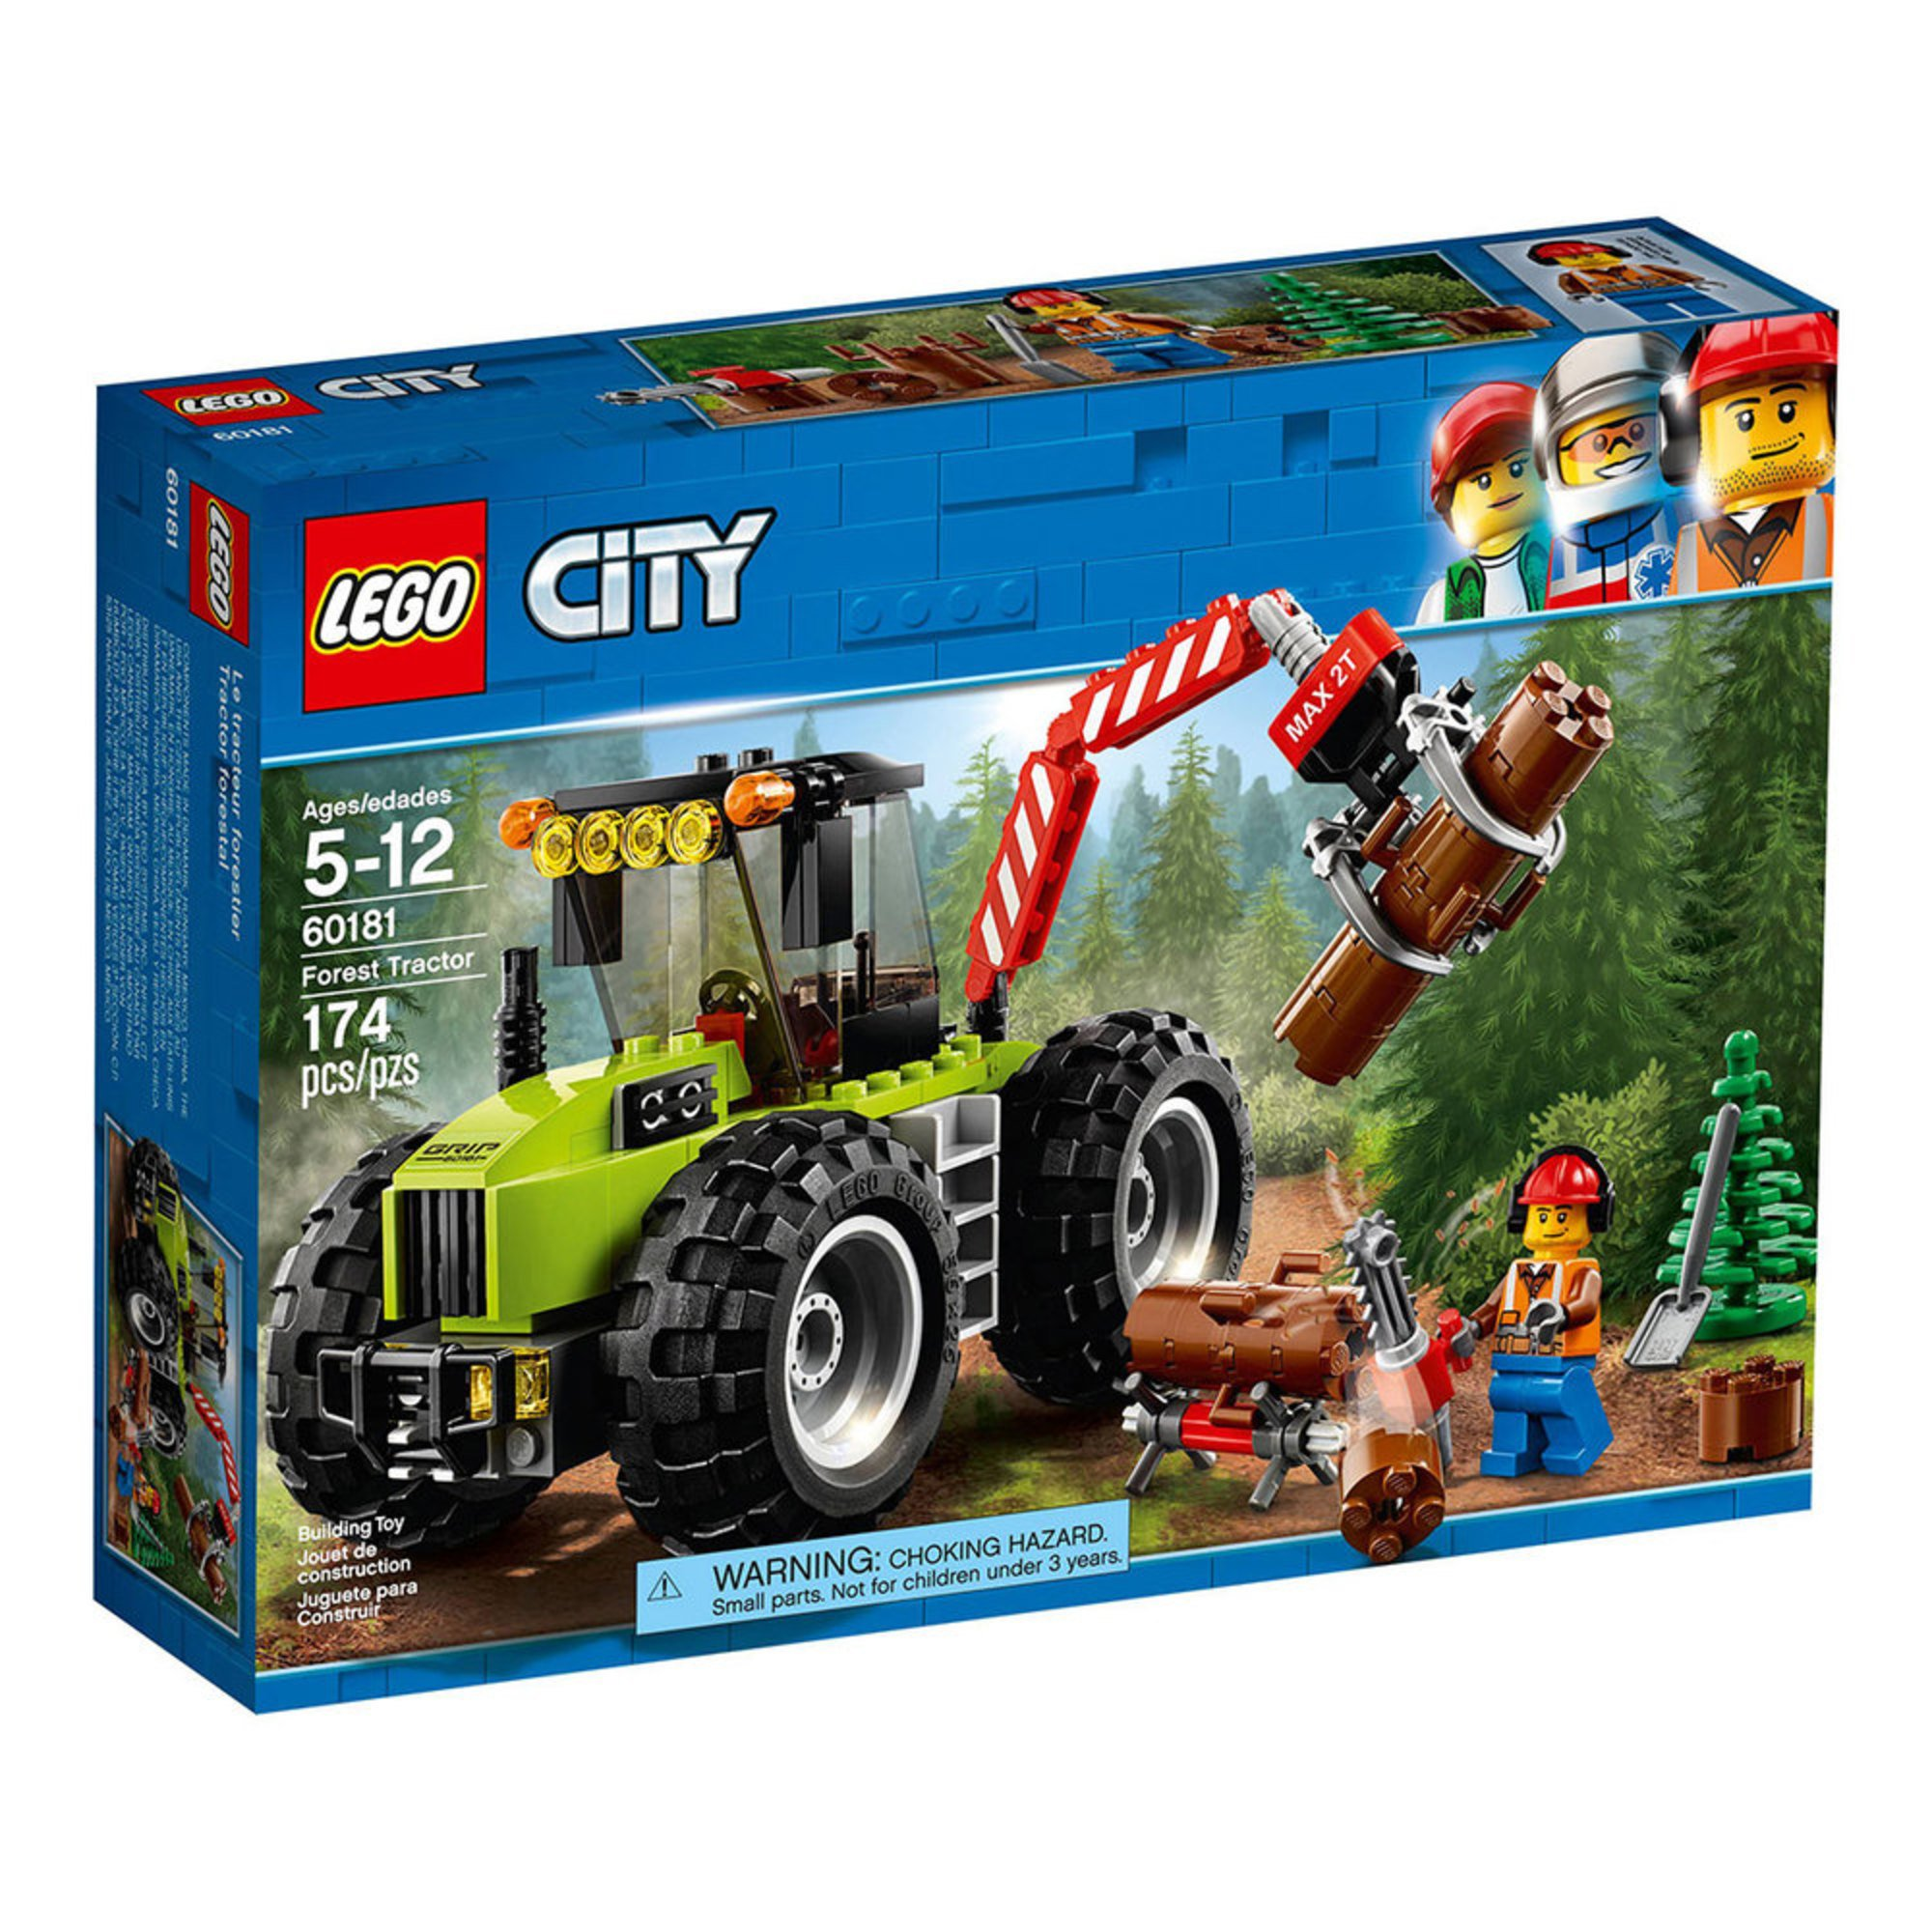 Lego City Forest Tractor 60181 Building Sets Kits Baby Kids